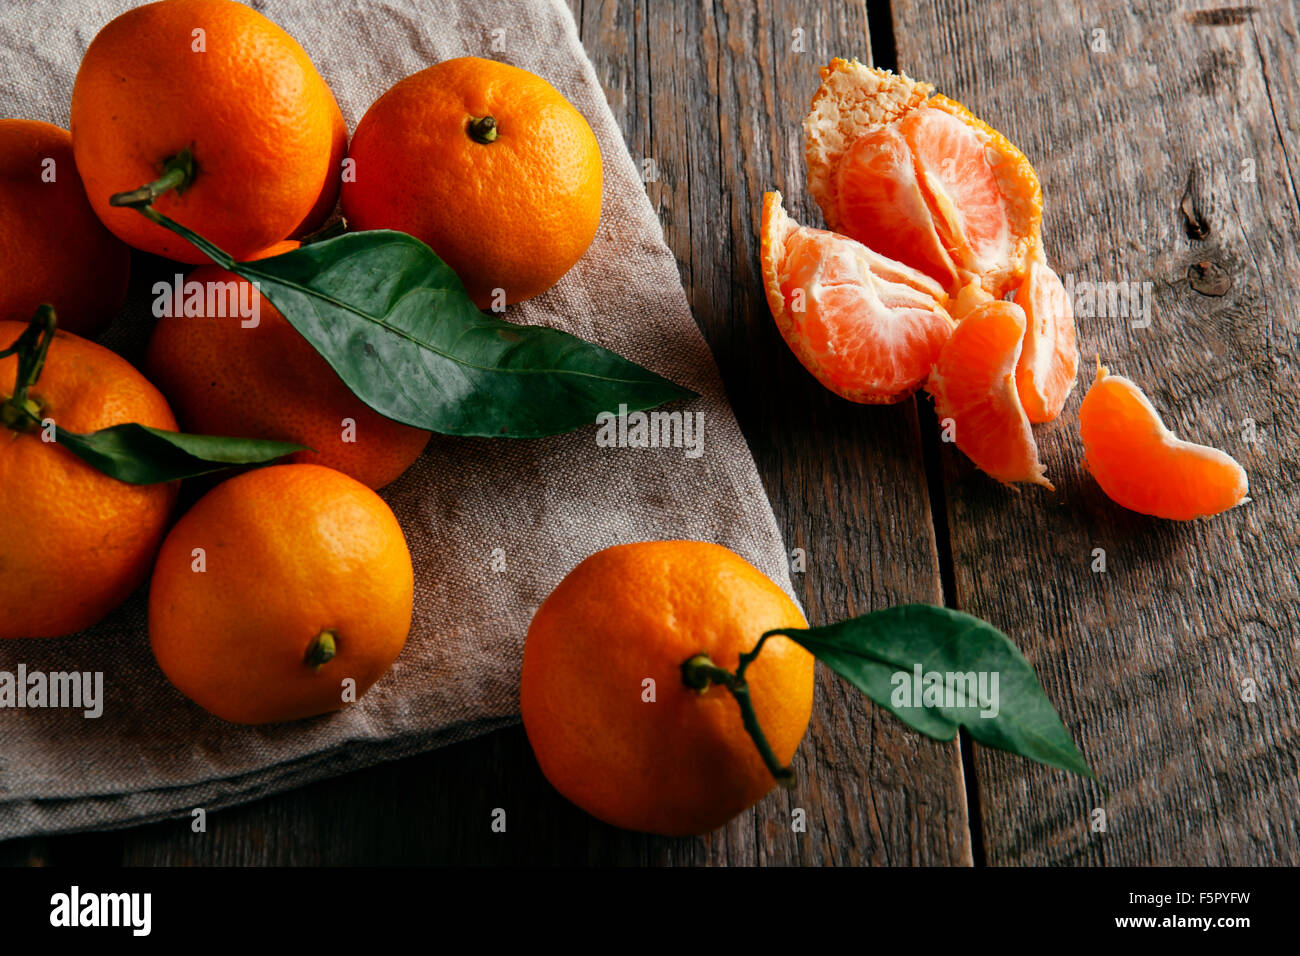 Ripe tangerines with leafs on wooden table - Stock Image